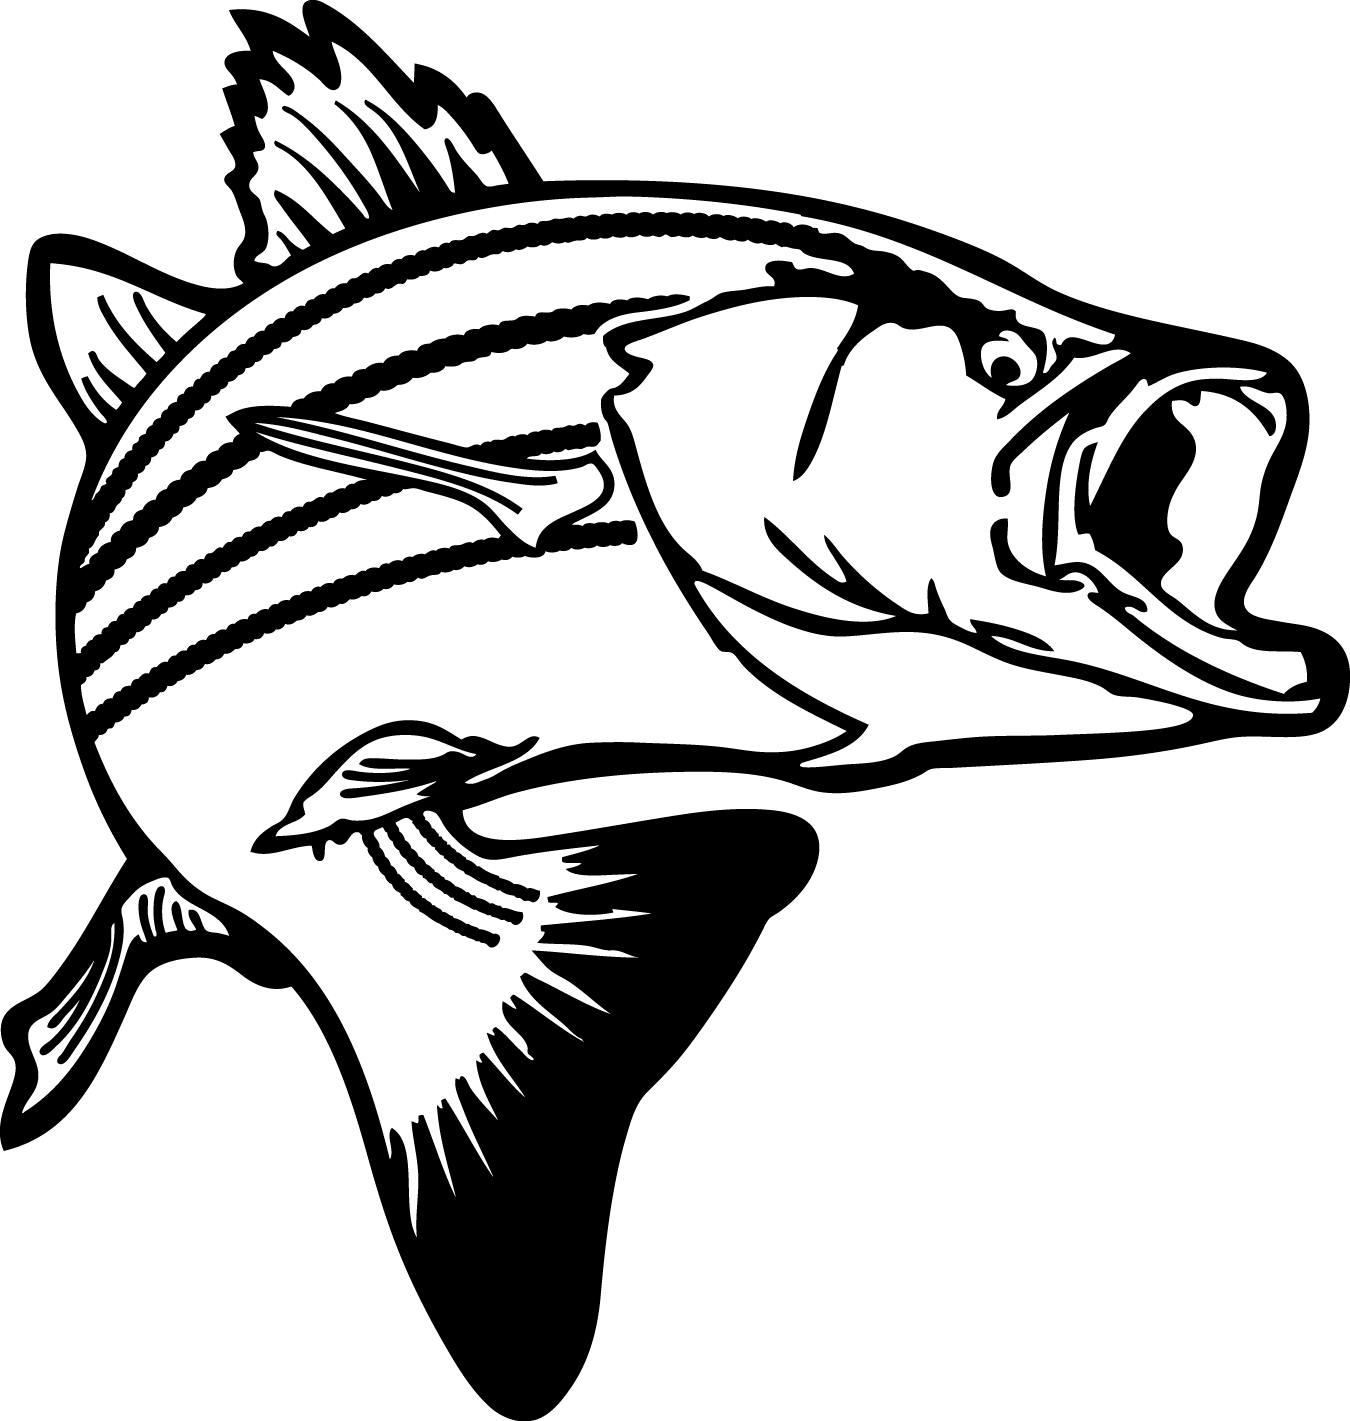 jumping bass fish black and white clipart